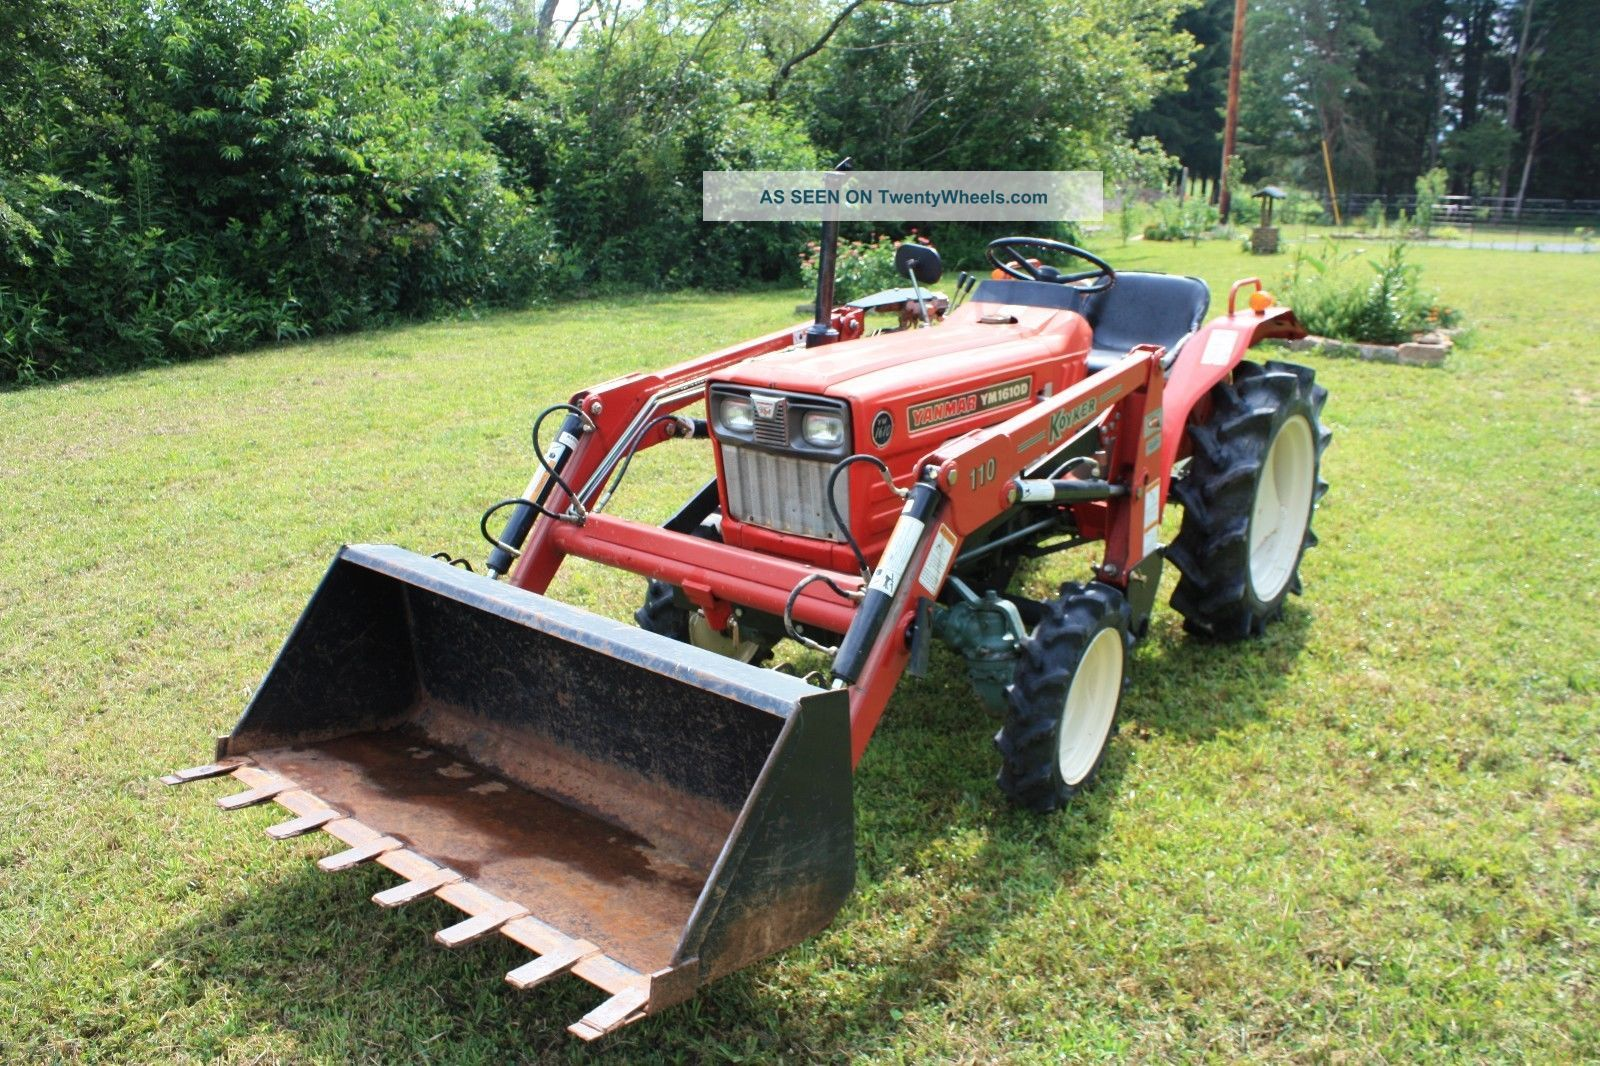 Vintage Tractor Yanmar 1610 Model 1970 - 1971 Tractor And Front Loader Red 833 Hrs Antique & Vintage Farm Equip photo